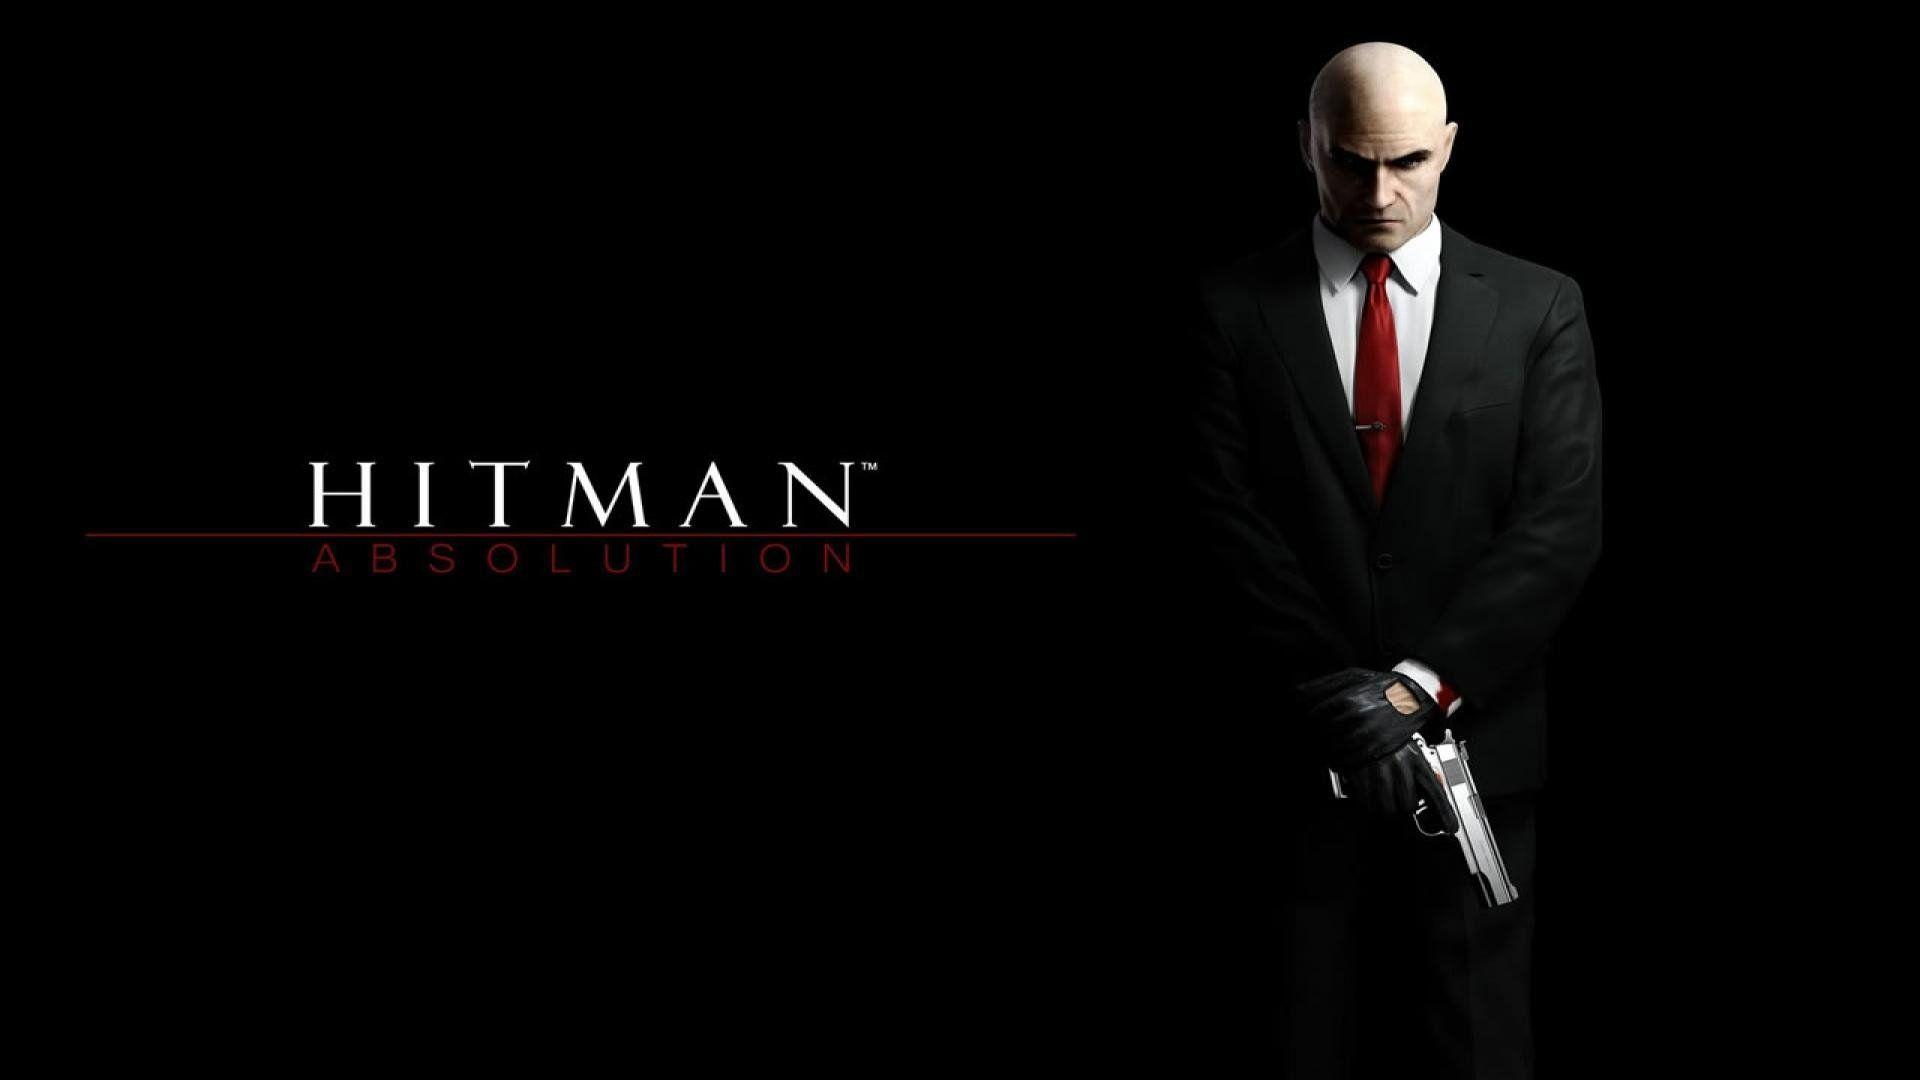 55 Hitman Absolution HD Wallpapers